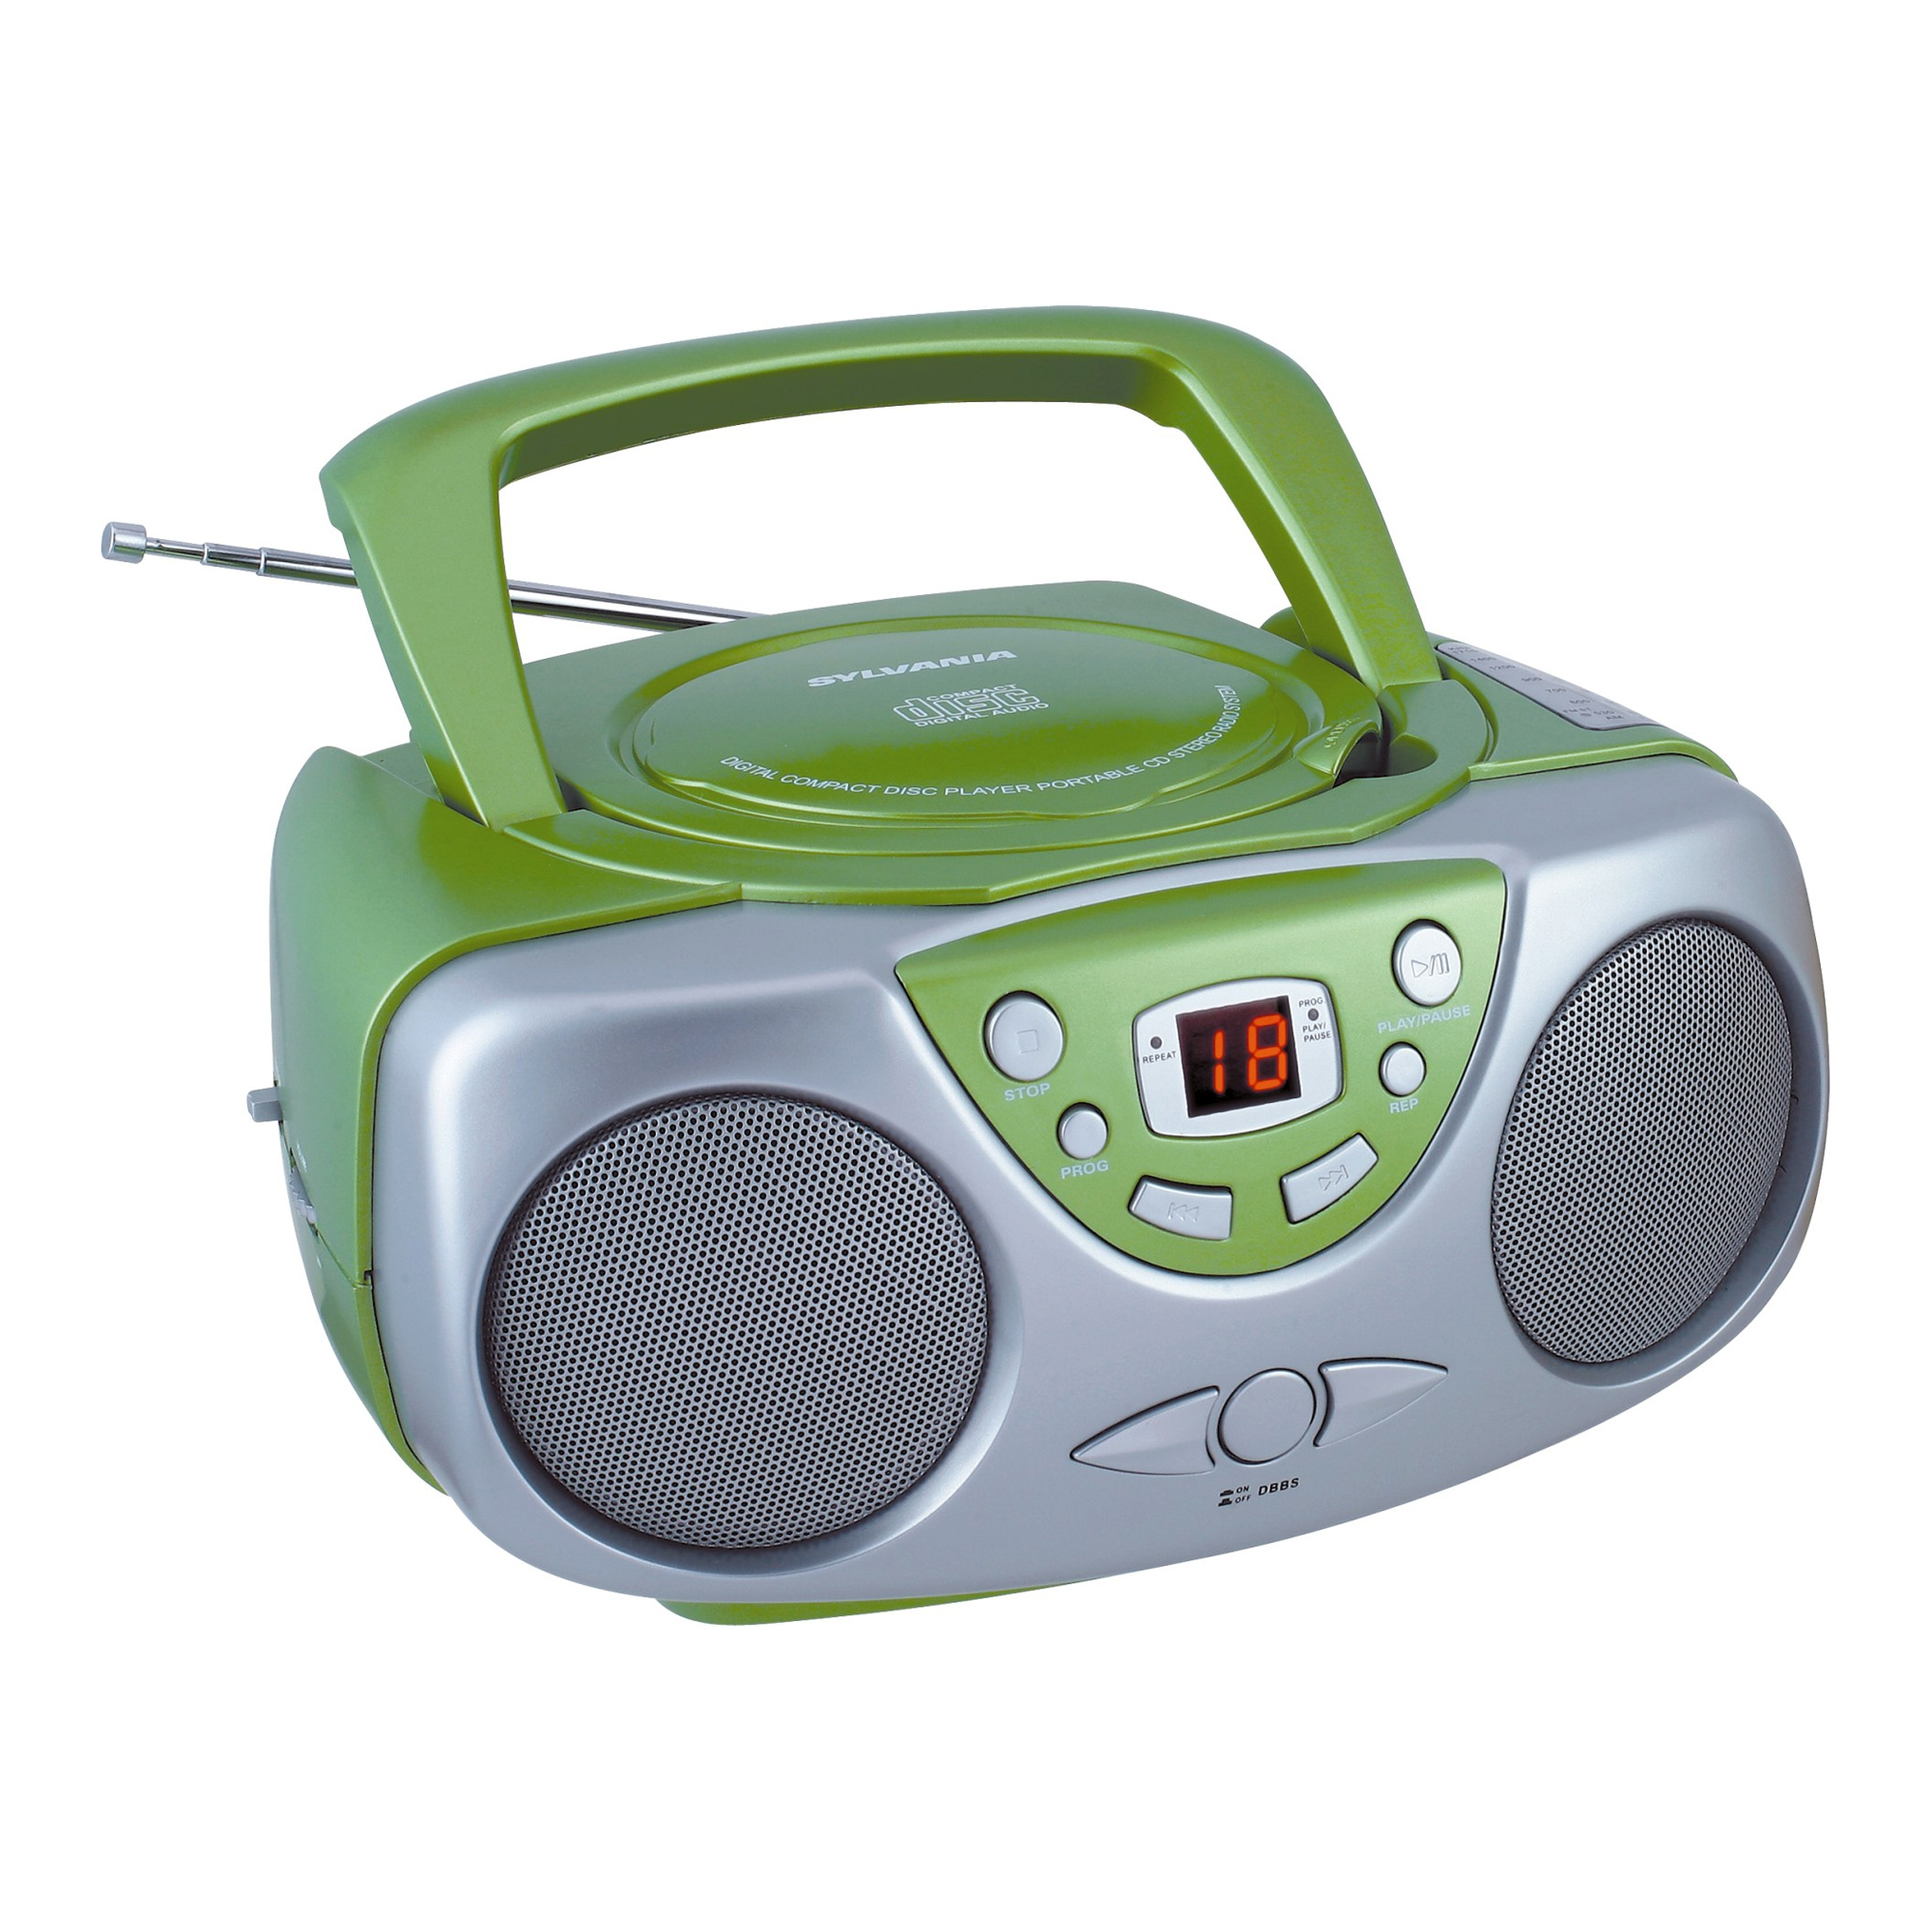 Sylvania Portable AM/FM CD Boombox with AUX Line-in, Green